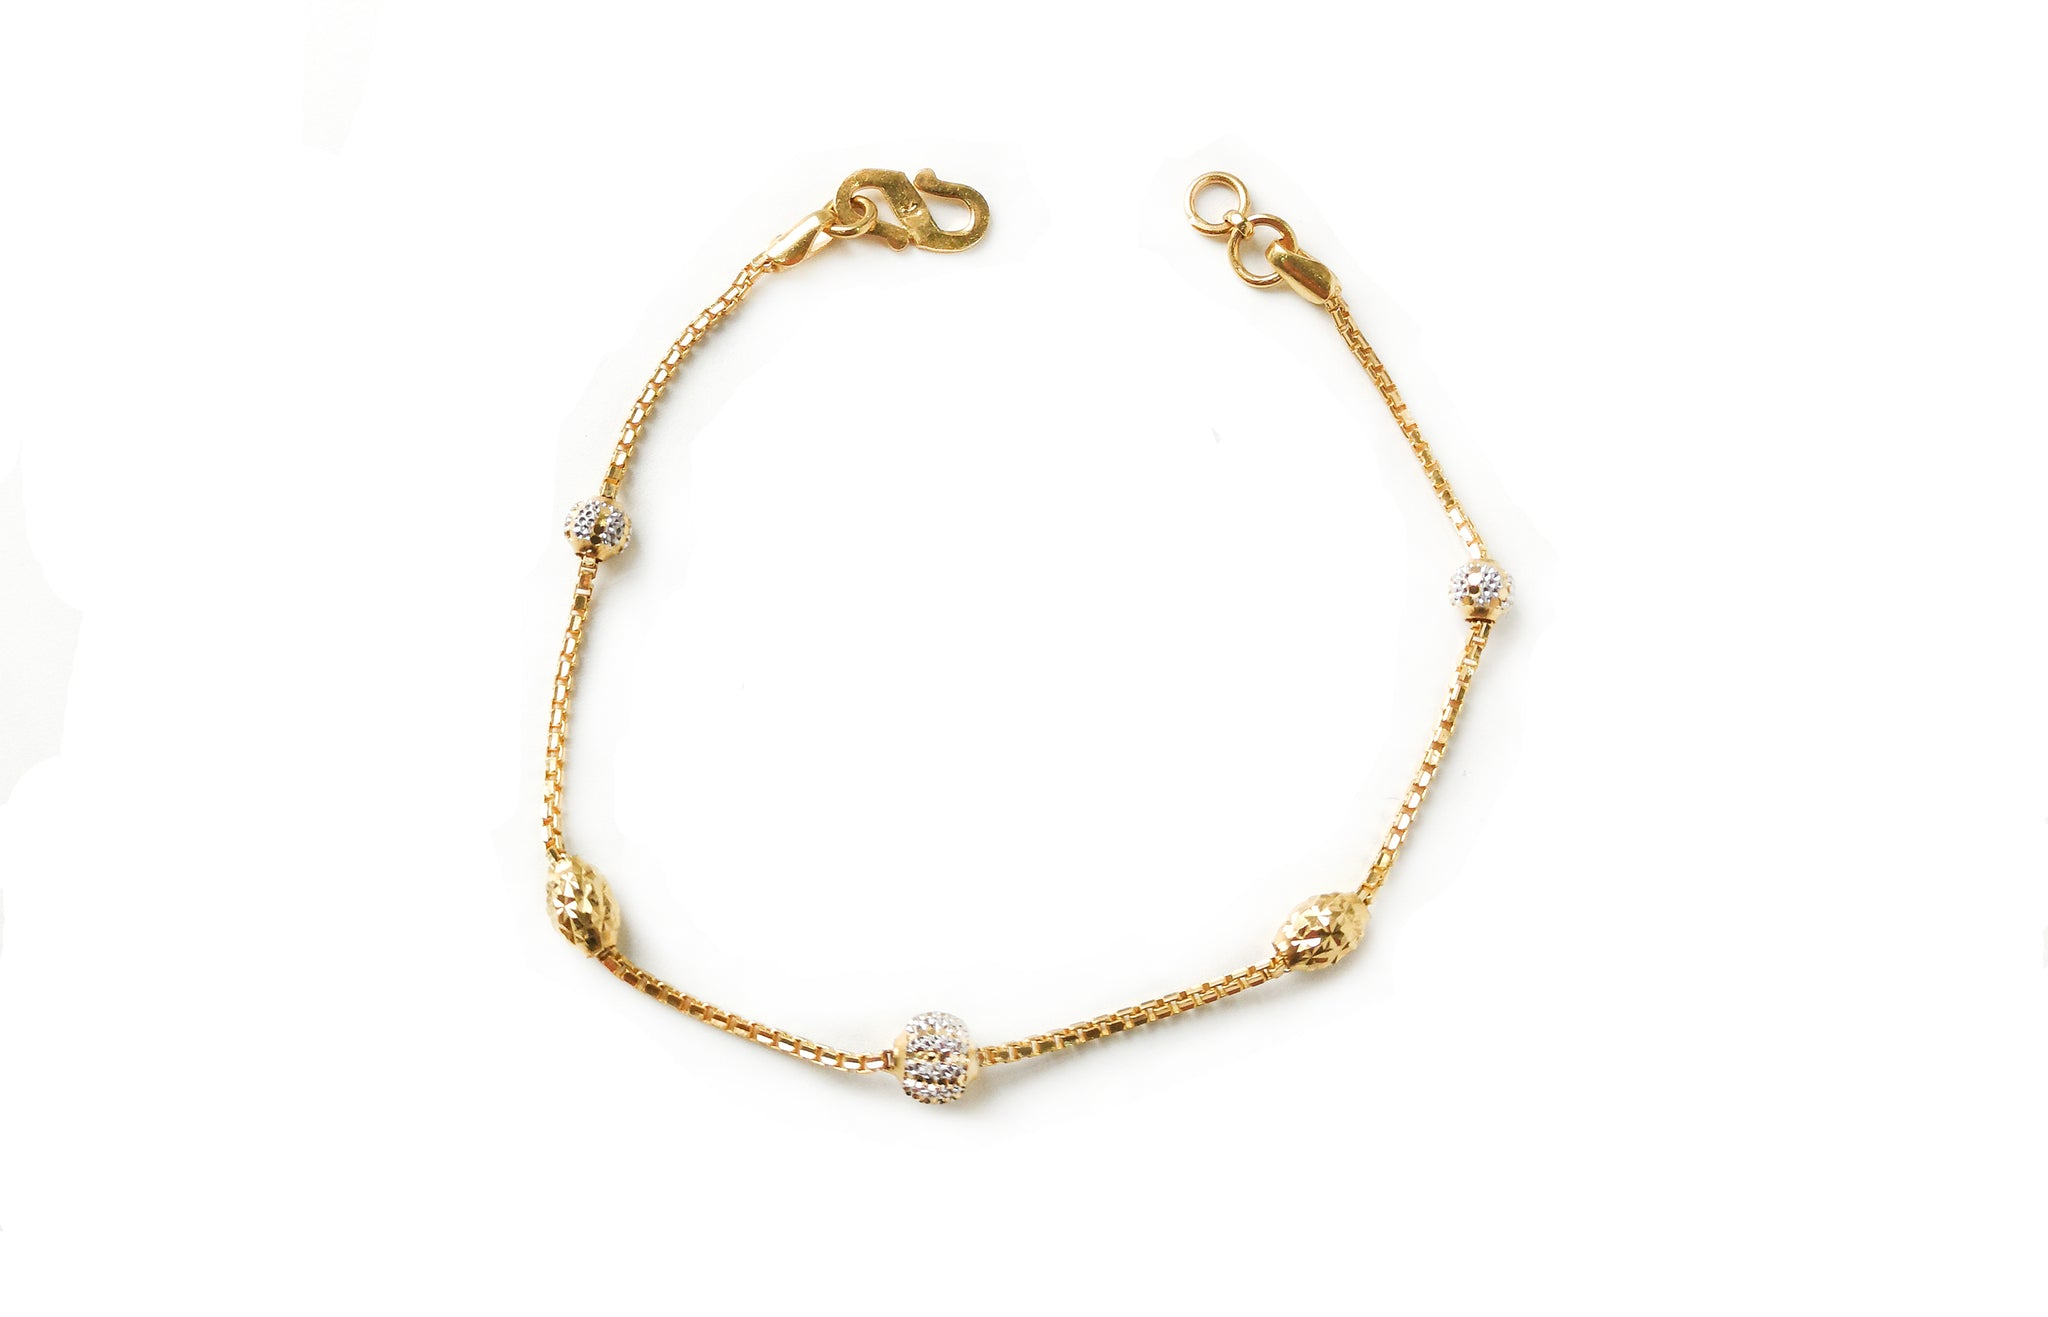 22ct Gold Bracelet with Diamond Cut and Rhodium Design (4.2g) LBR-7668